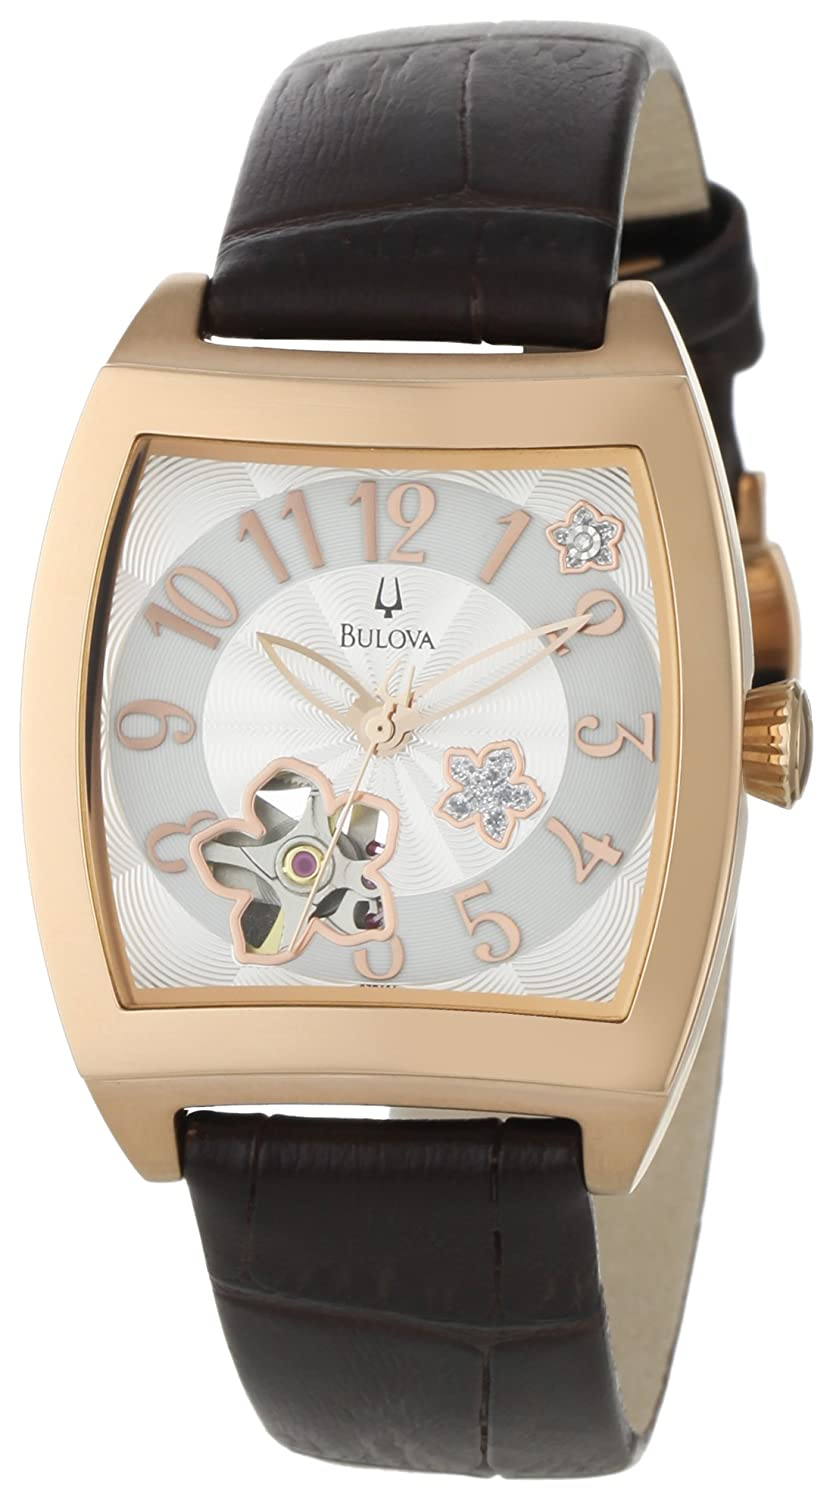 Amazon.com: Bulova Women's 97P101 BVA Series Floral Aperture Dial Watch:  Bulova: Watches